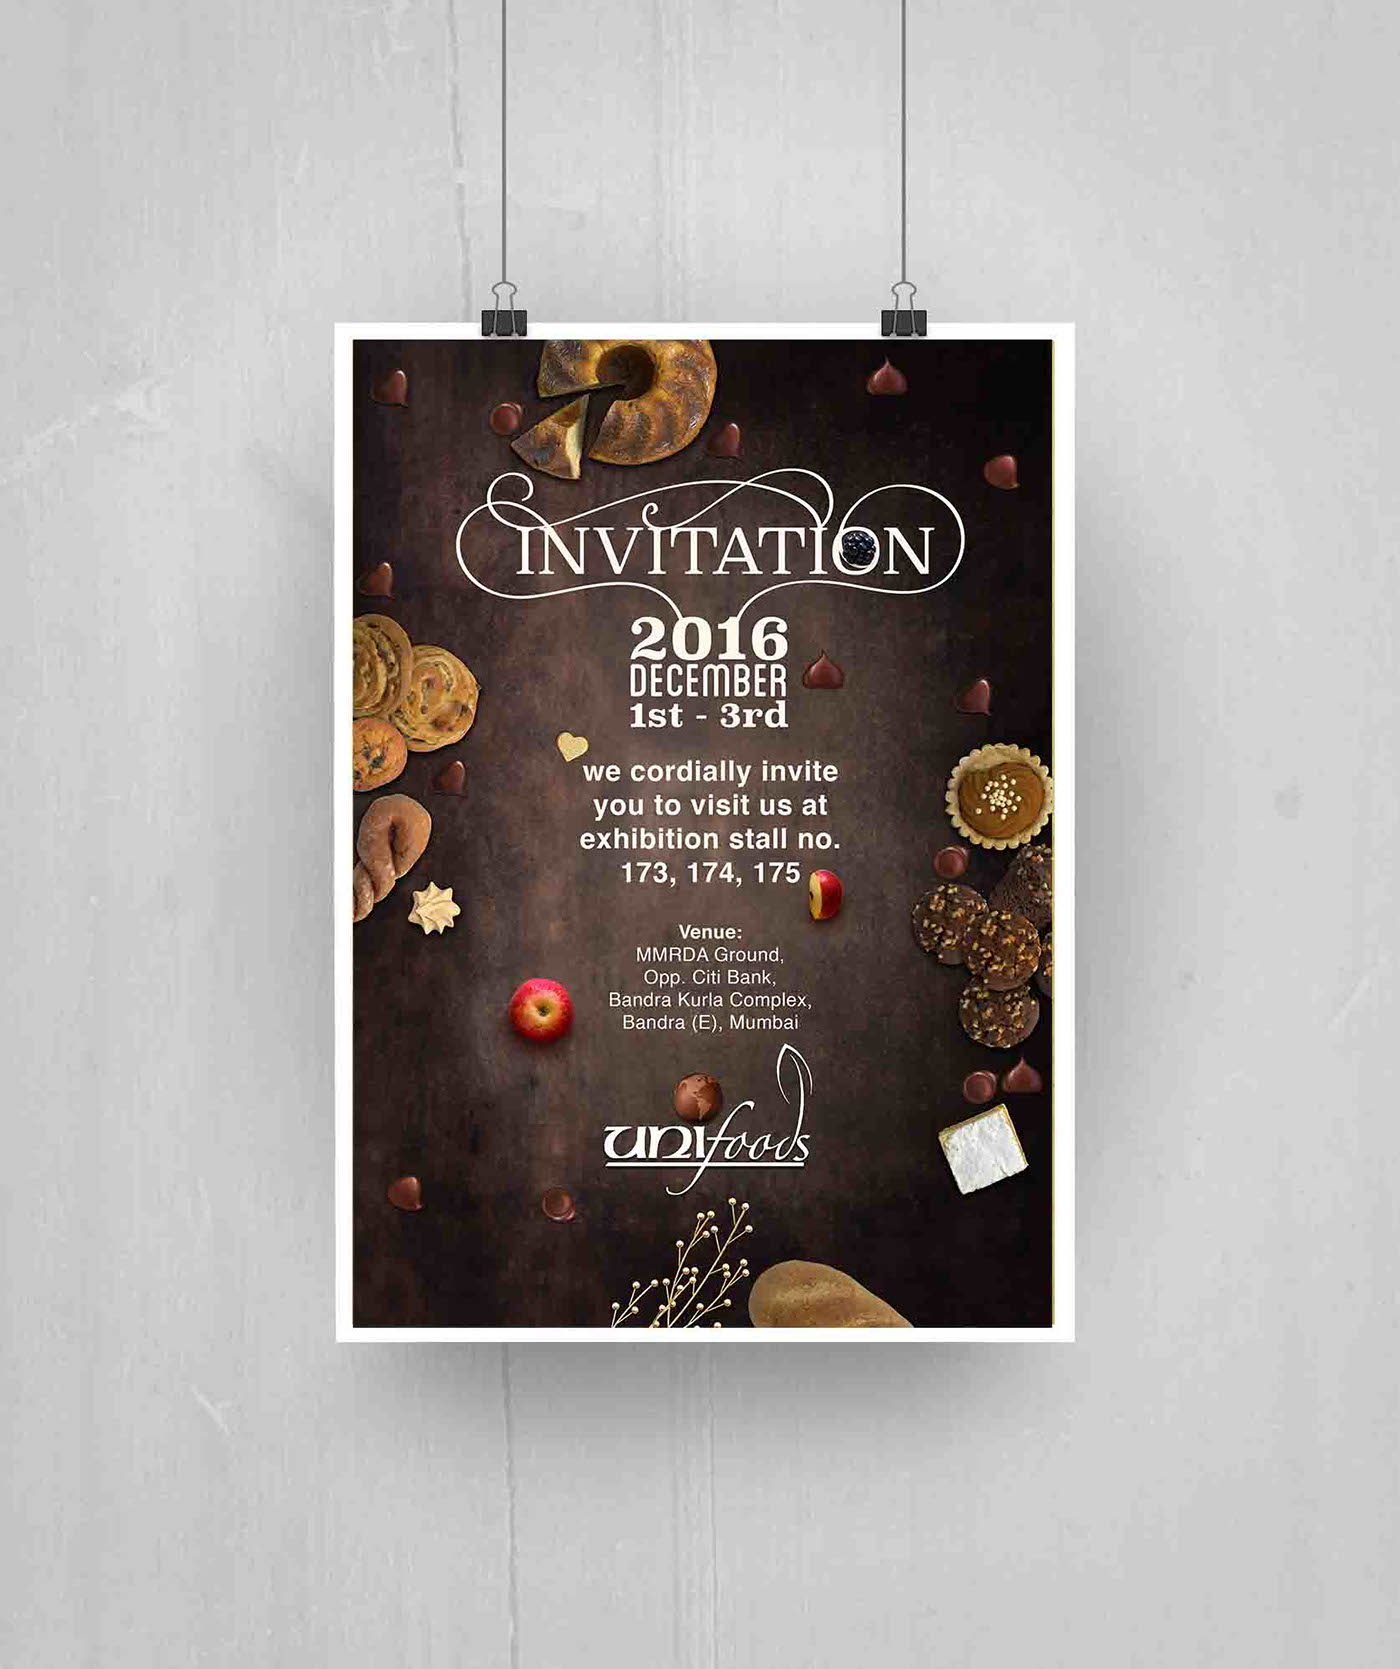 Invitation design for exhibition on behance stopboris Choice Image